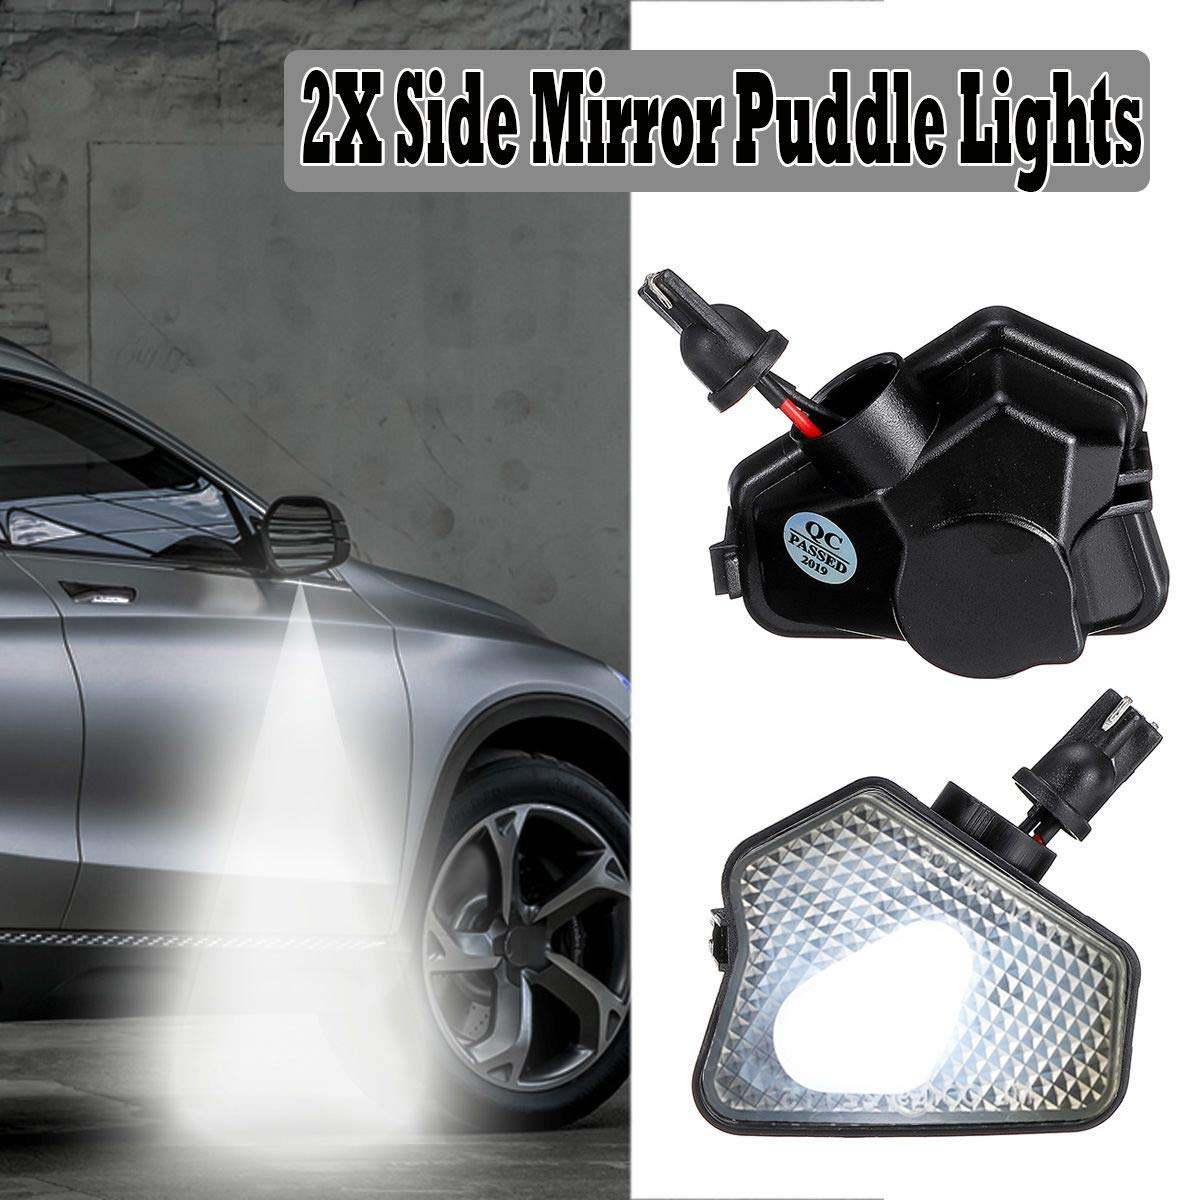 CUHAWUDBA 2Pcs Car Rearview Mirror Turn Signal 9LED Indicator Puddle Lights for Mercedes CLA CLS GLK GLA W176 W242 C219 X156 X204 X253